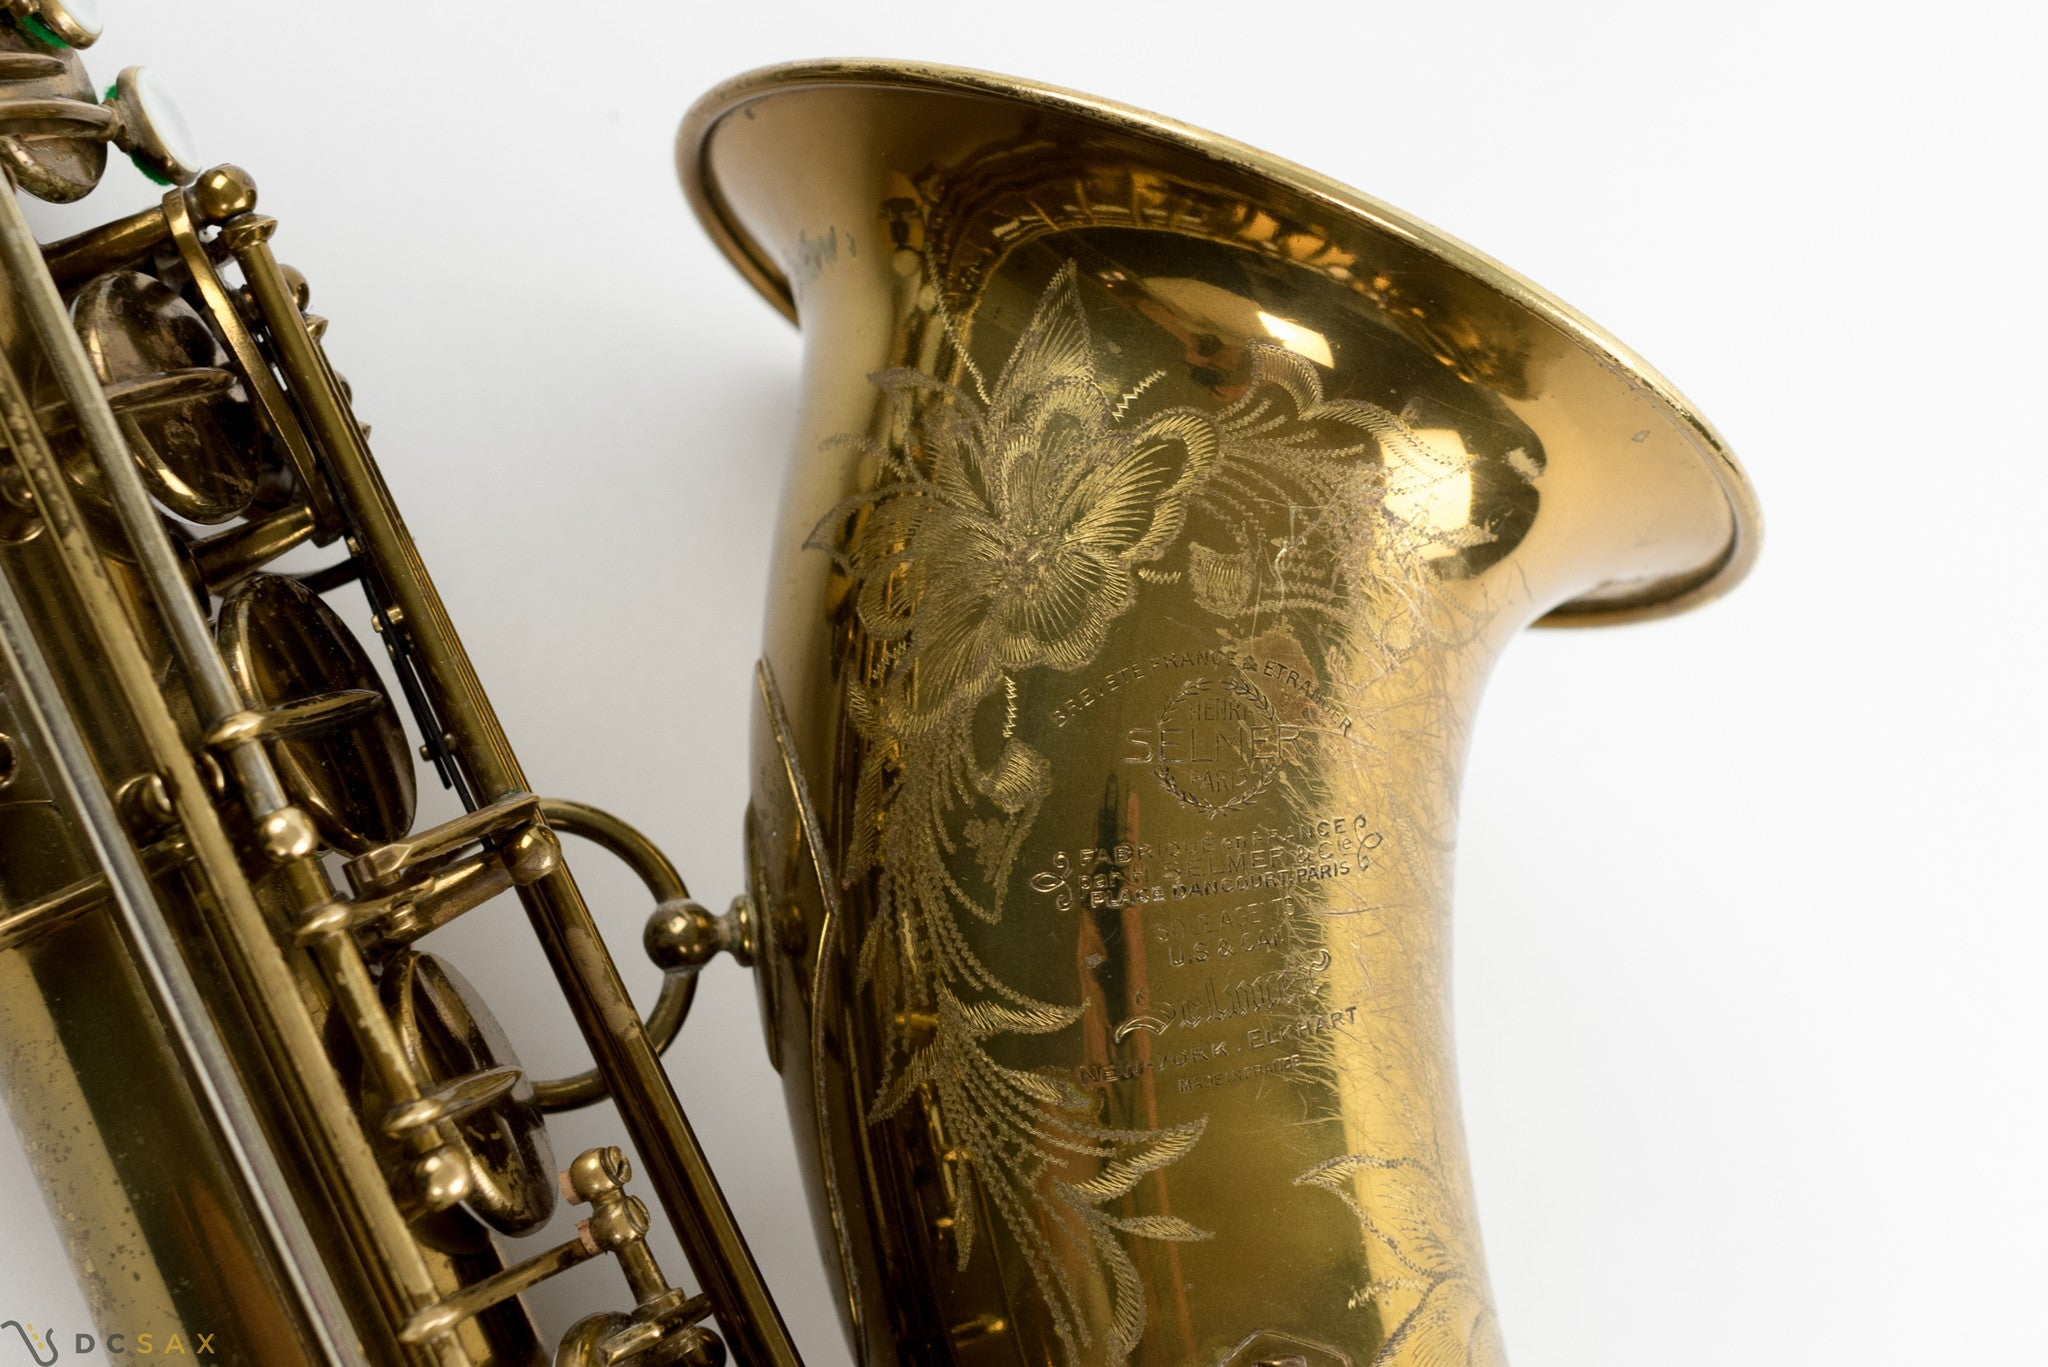 1949 40,xxx Selmer Super Balanced Action SBA Tenor Saxophone 95% ORIGINAL LACQUER